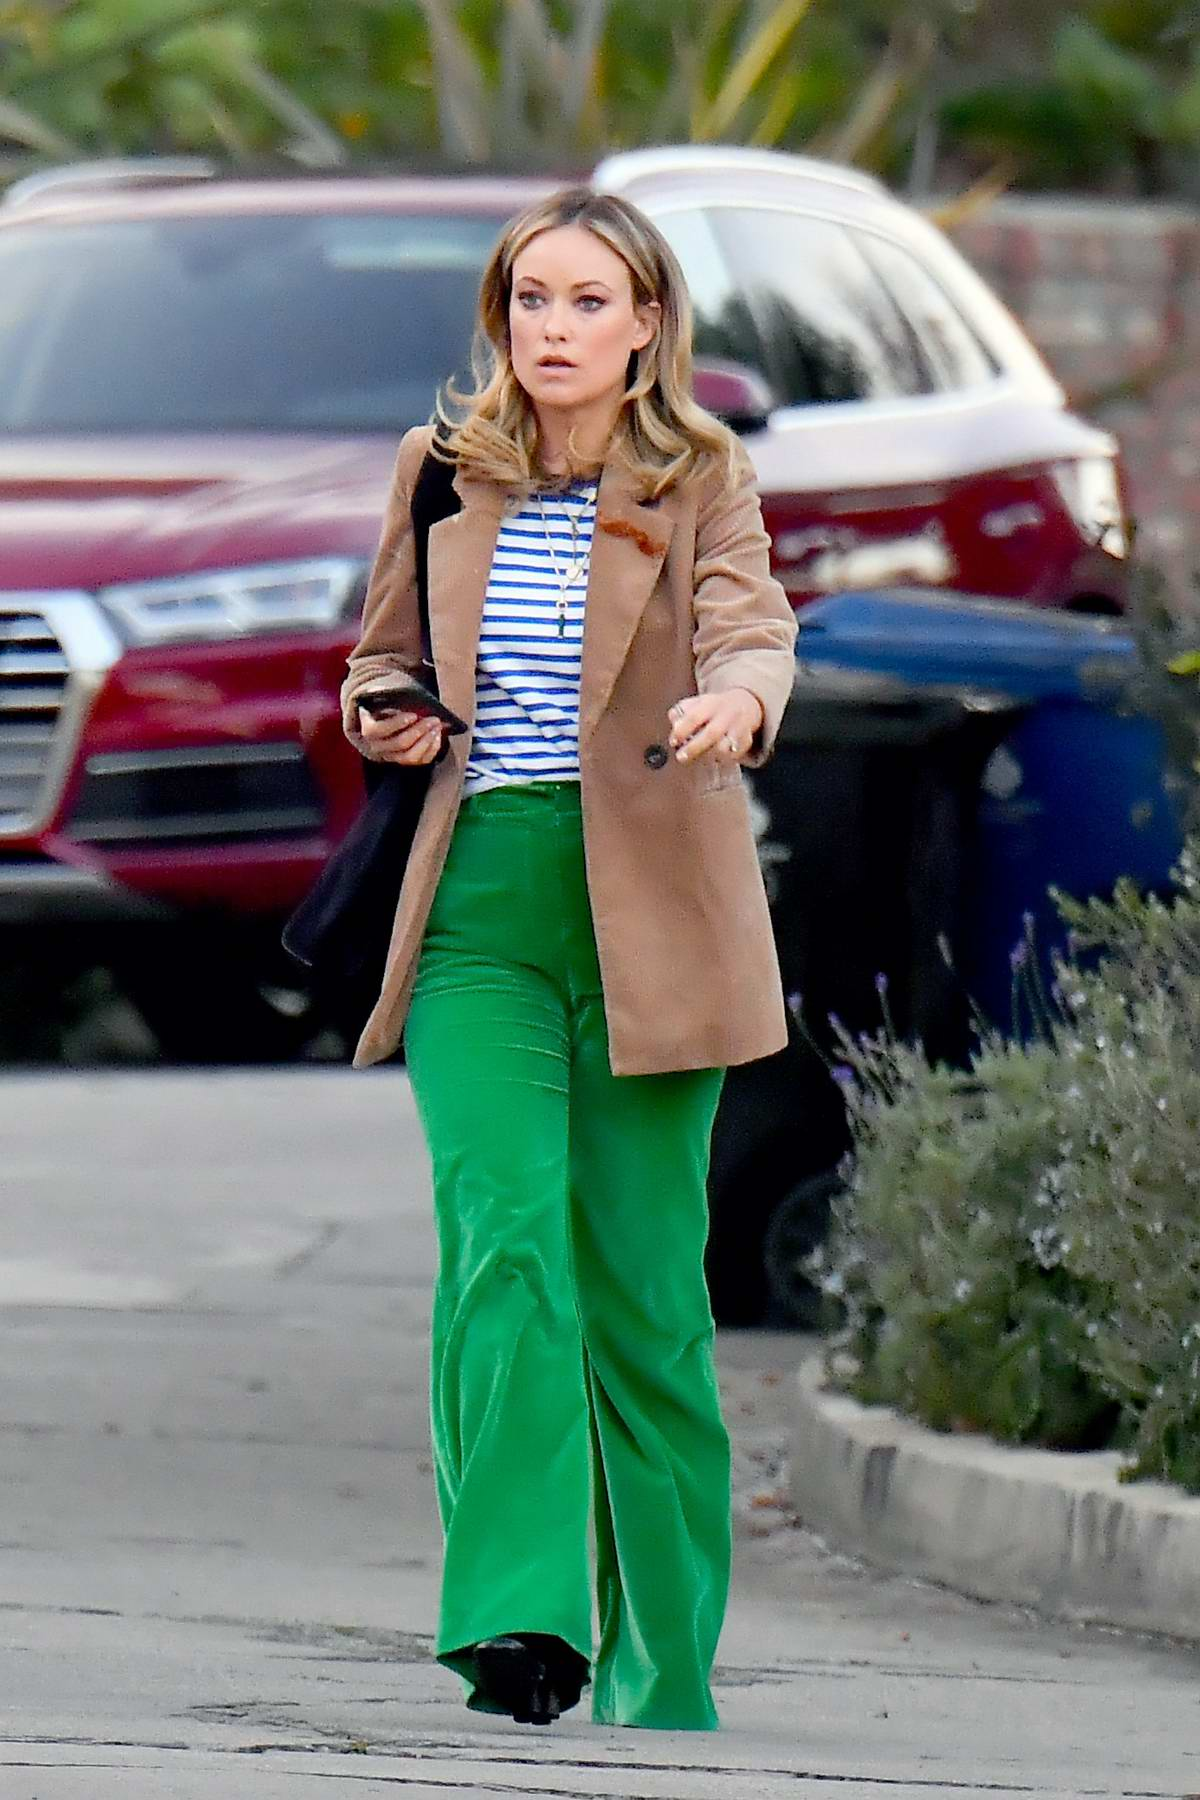 Olivia Wilde looks great in bright green pants and brown blazer as she heads to dinner in Los Angeles